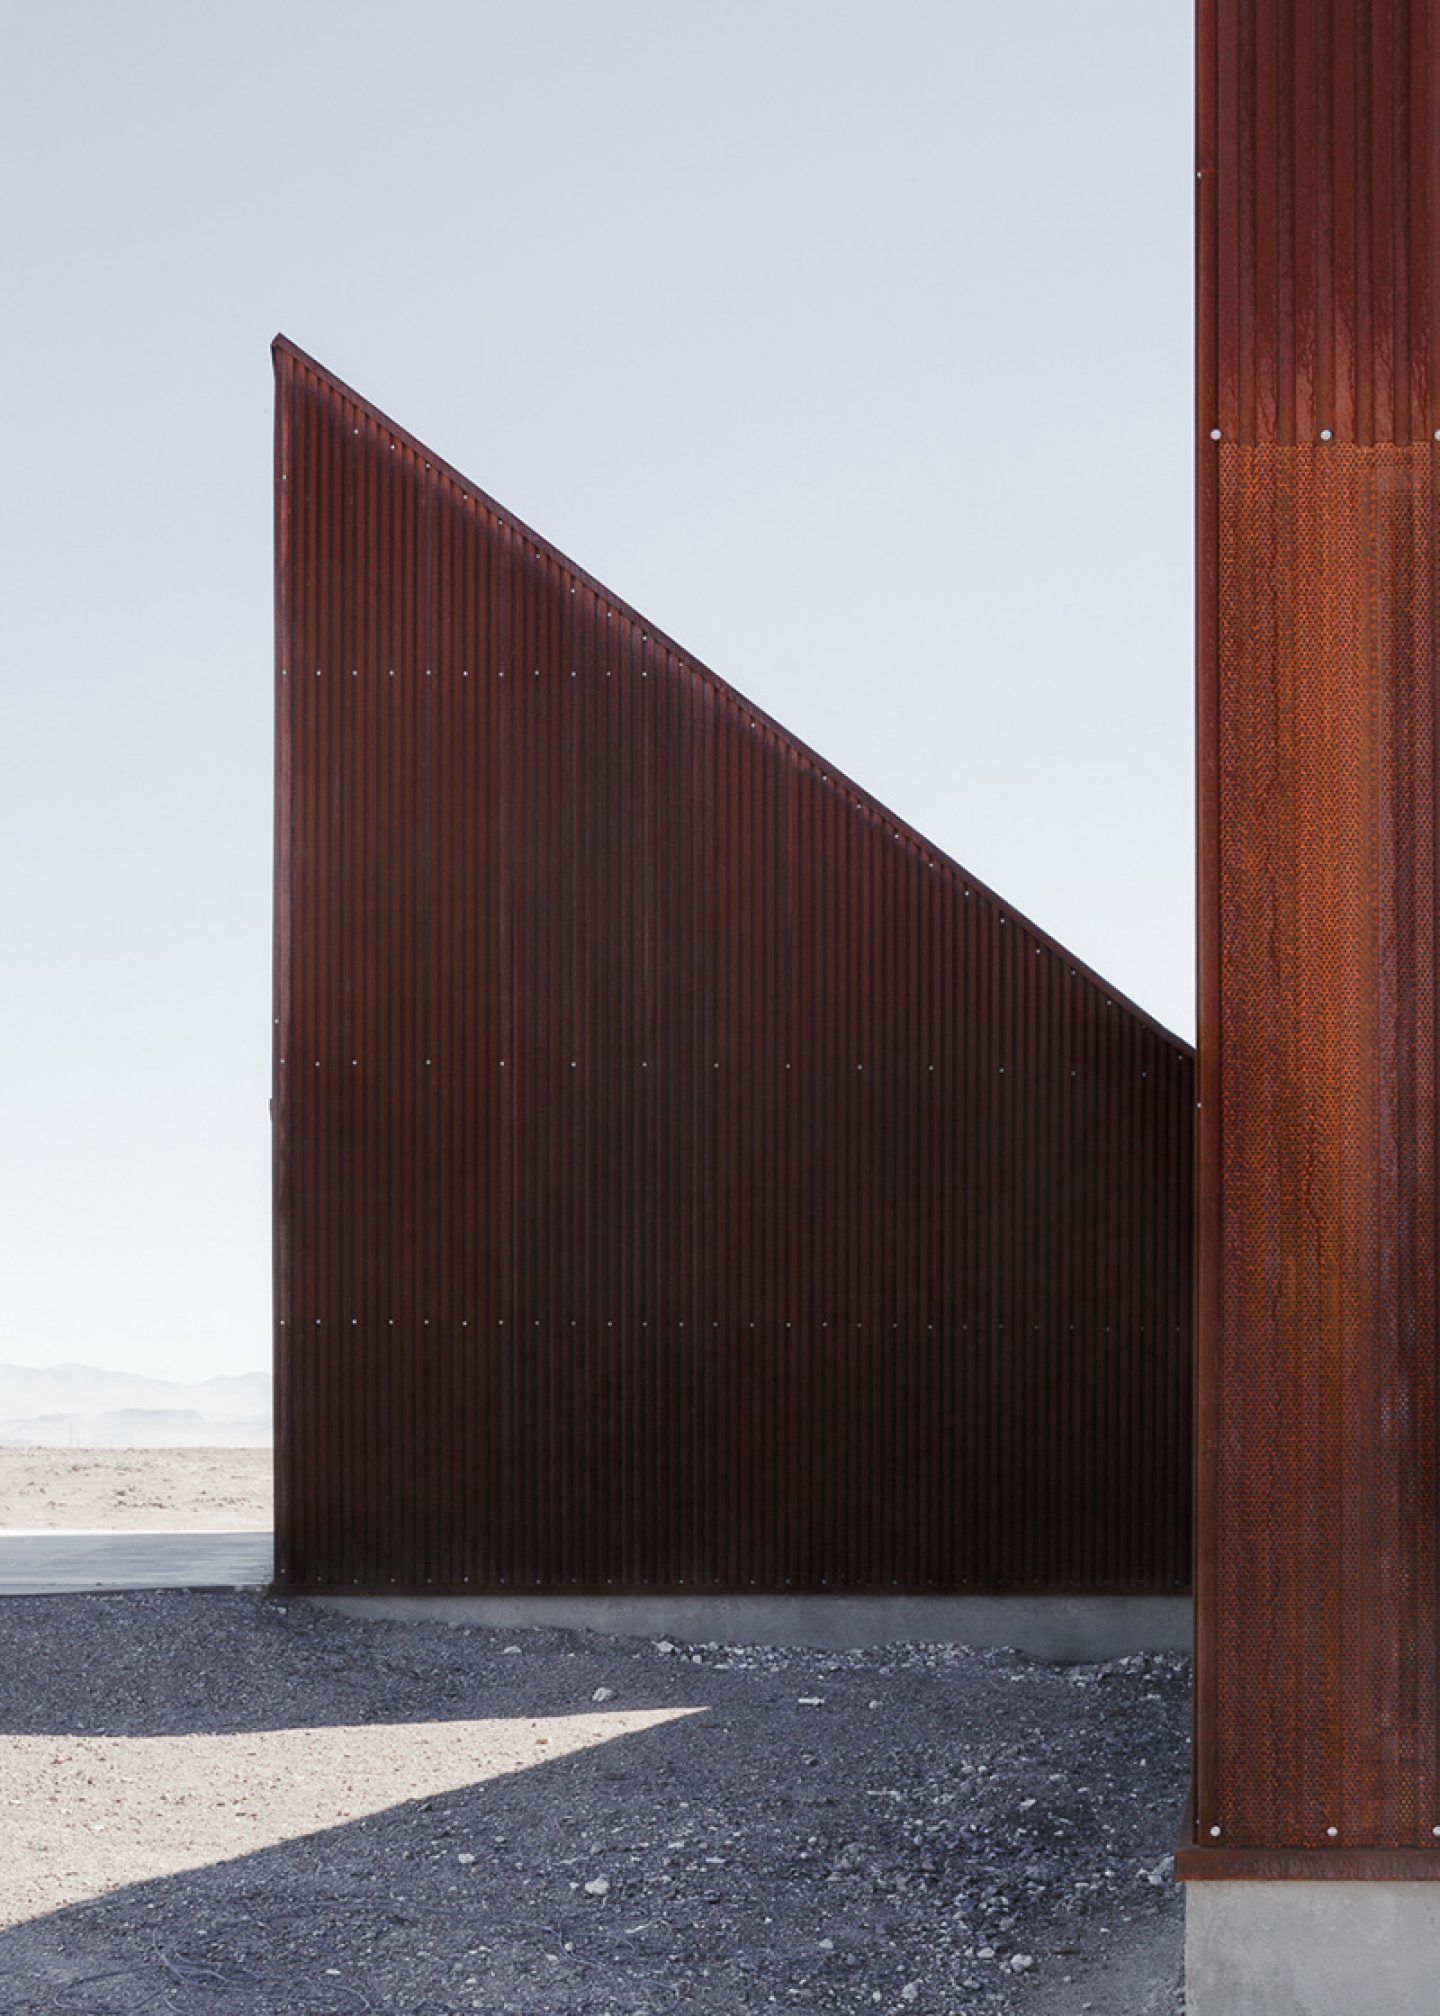 iGNANT-Architecture-Desert-Interpretation-Center-Emilio-Marin-Juan-Carlos-Lopez-4